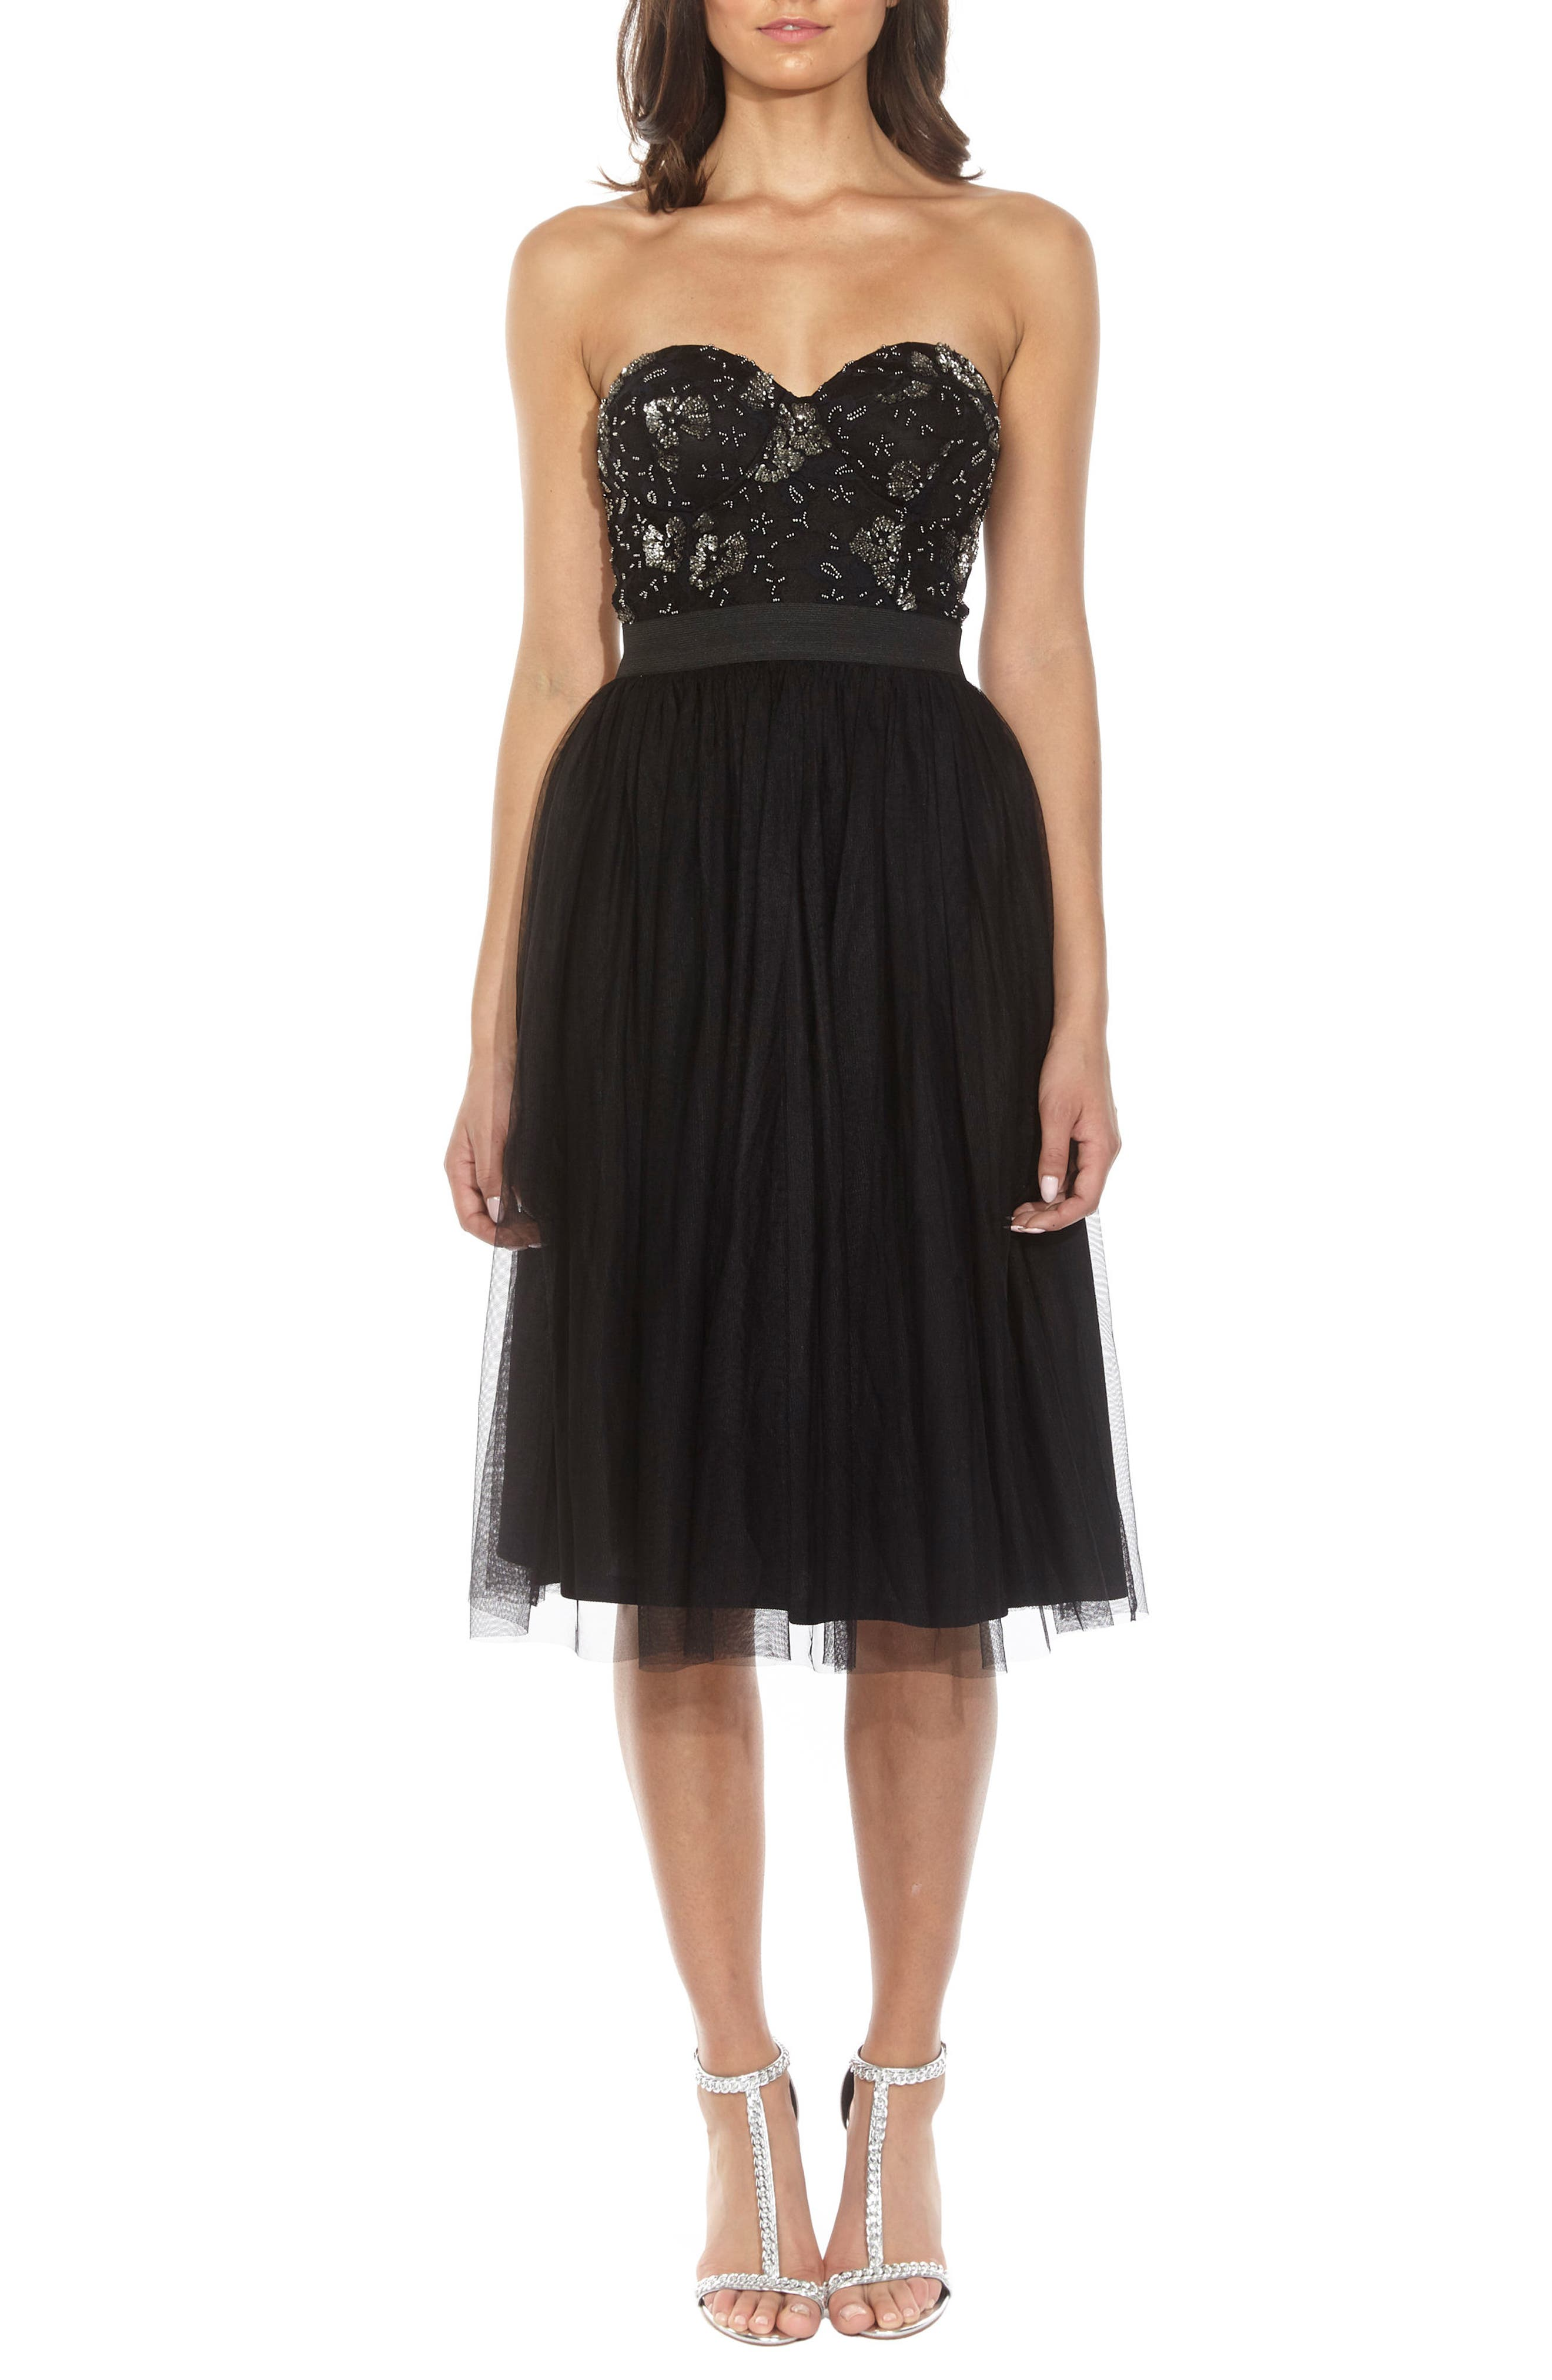 Alternate Image 1 Selected - Lace & Beads Mika Embellished Strapless Dress